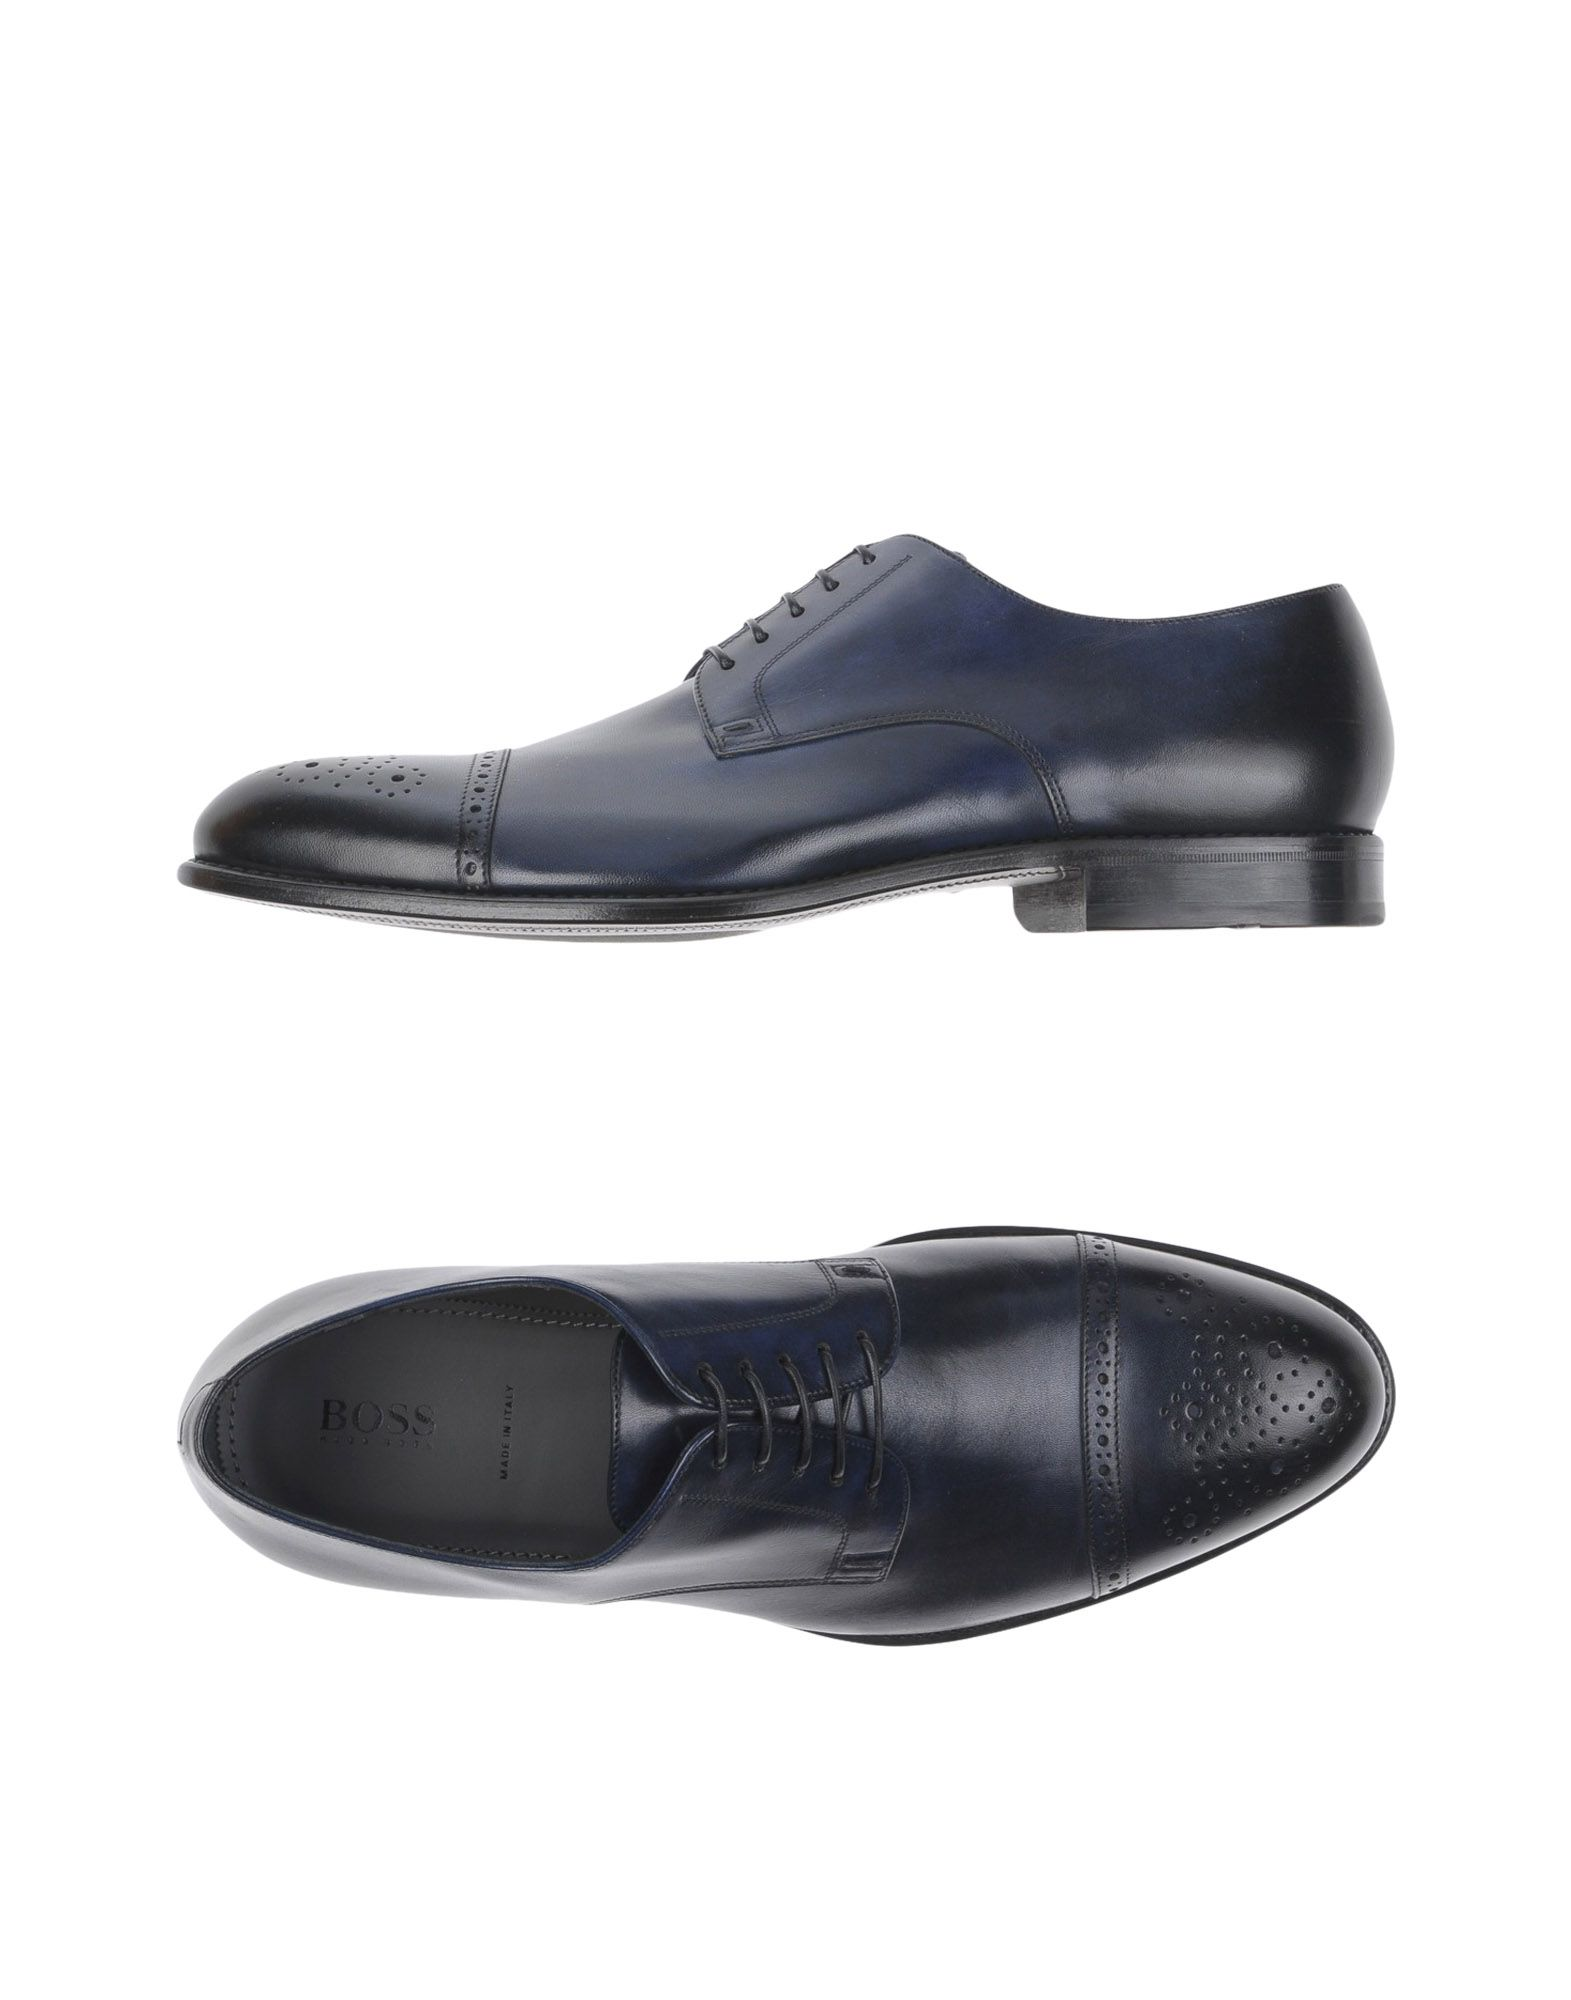 Boss Black Lace-up Shoes